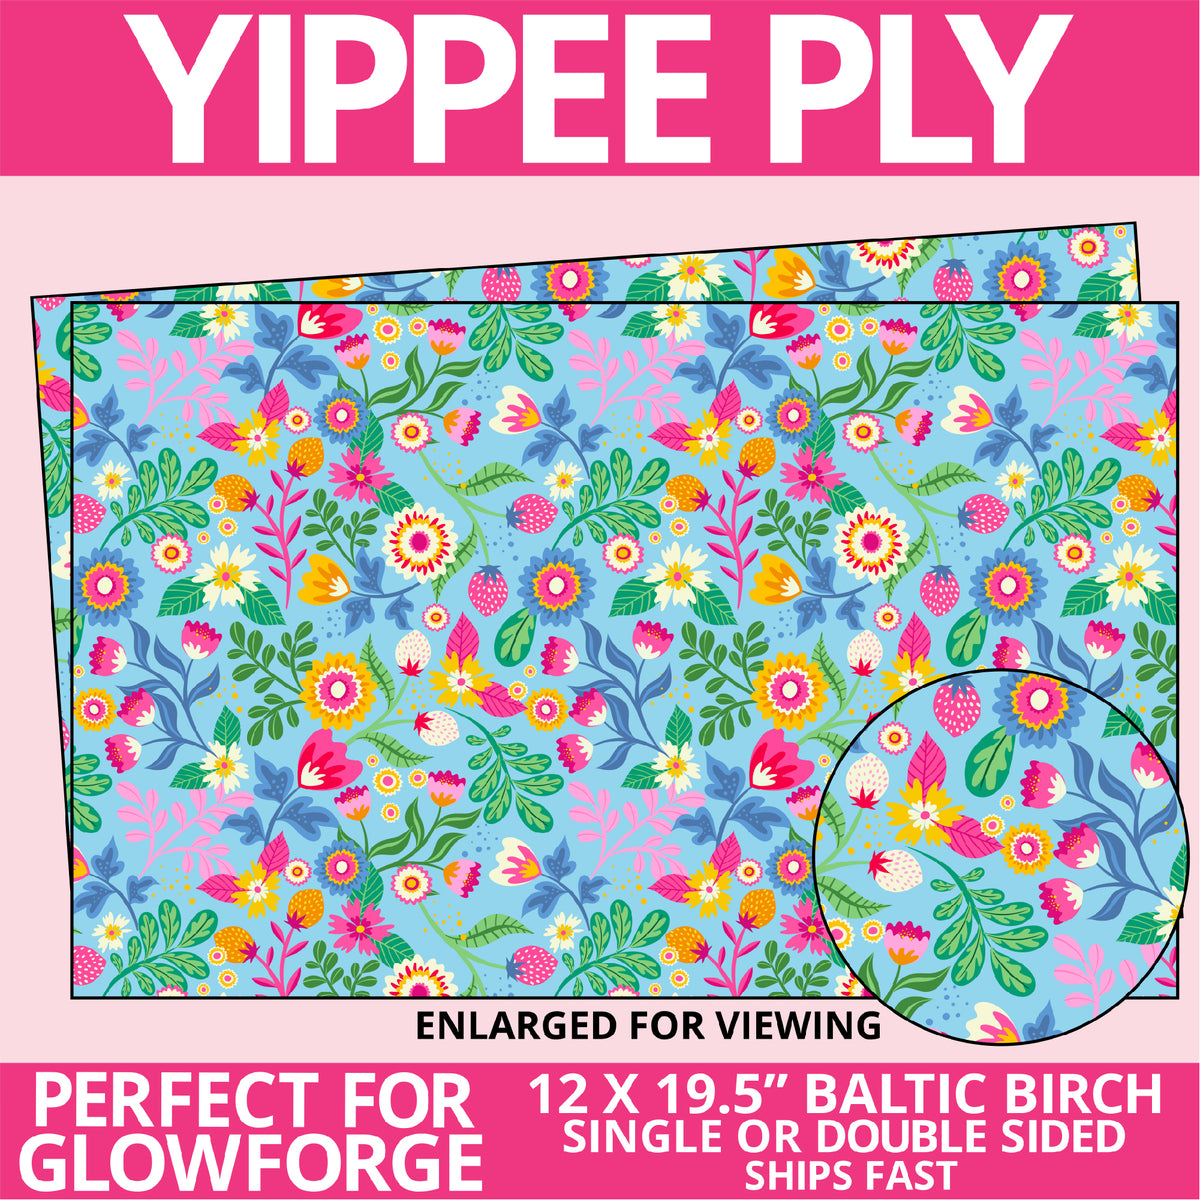 Yippee Ply Preppy Spring Pattern on Birch Plywood 1032